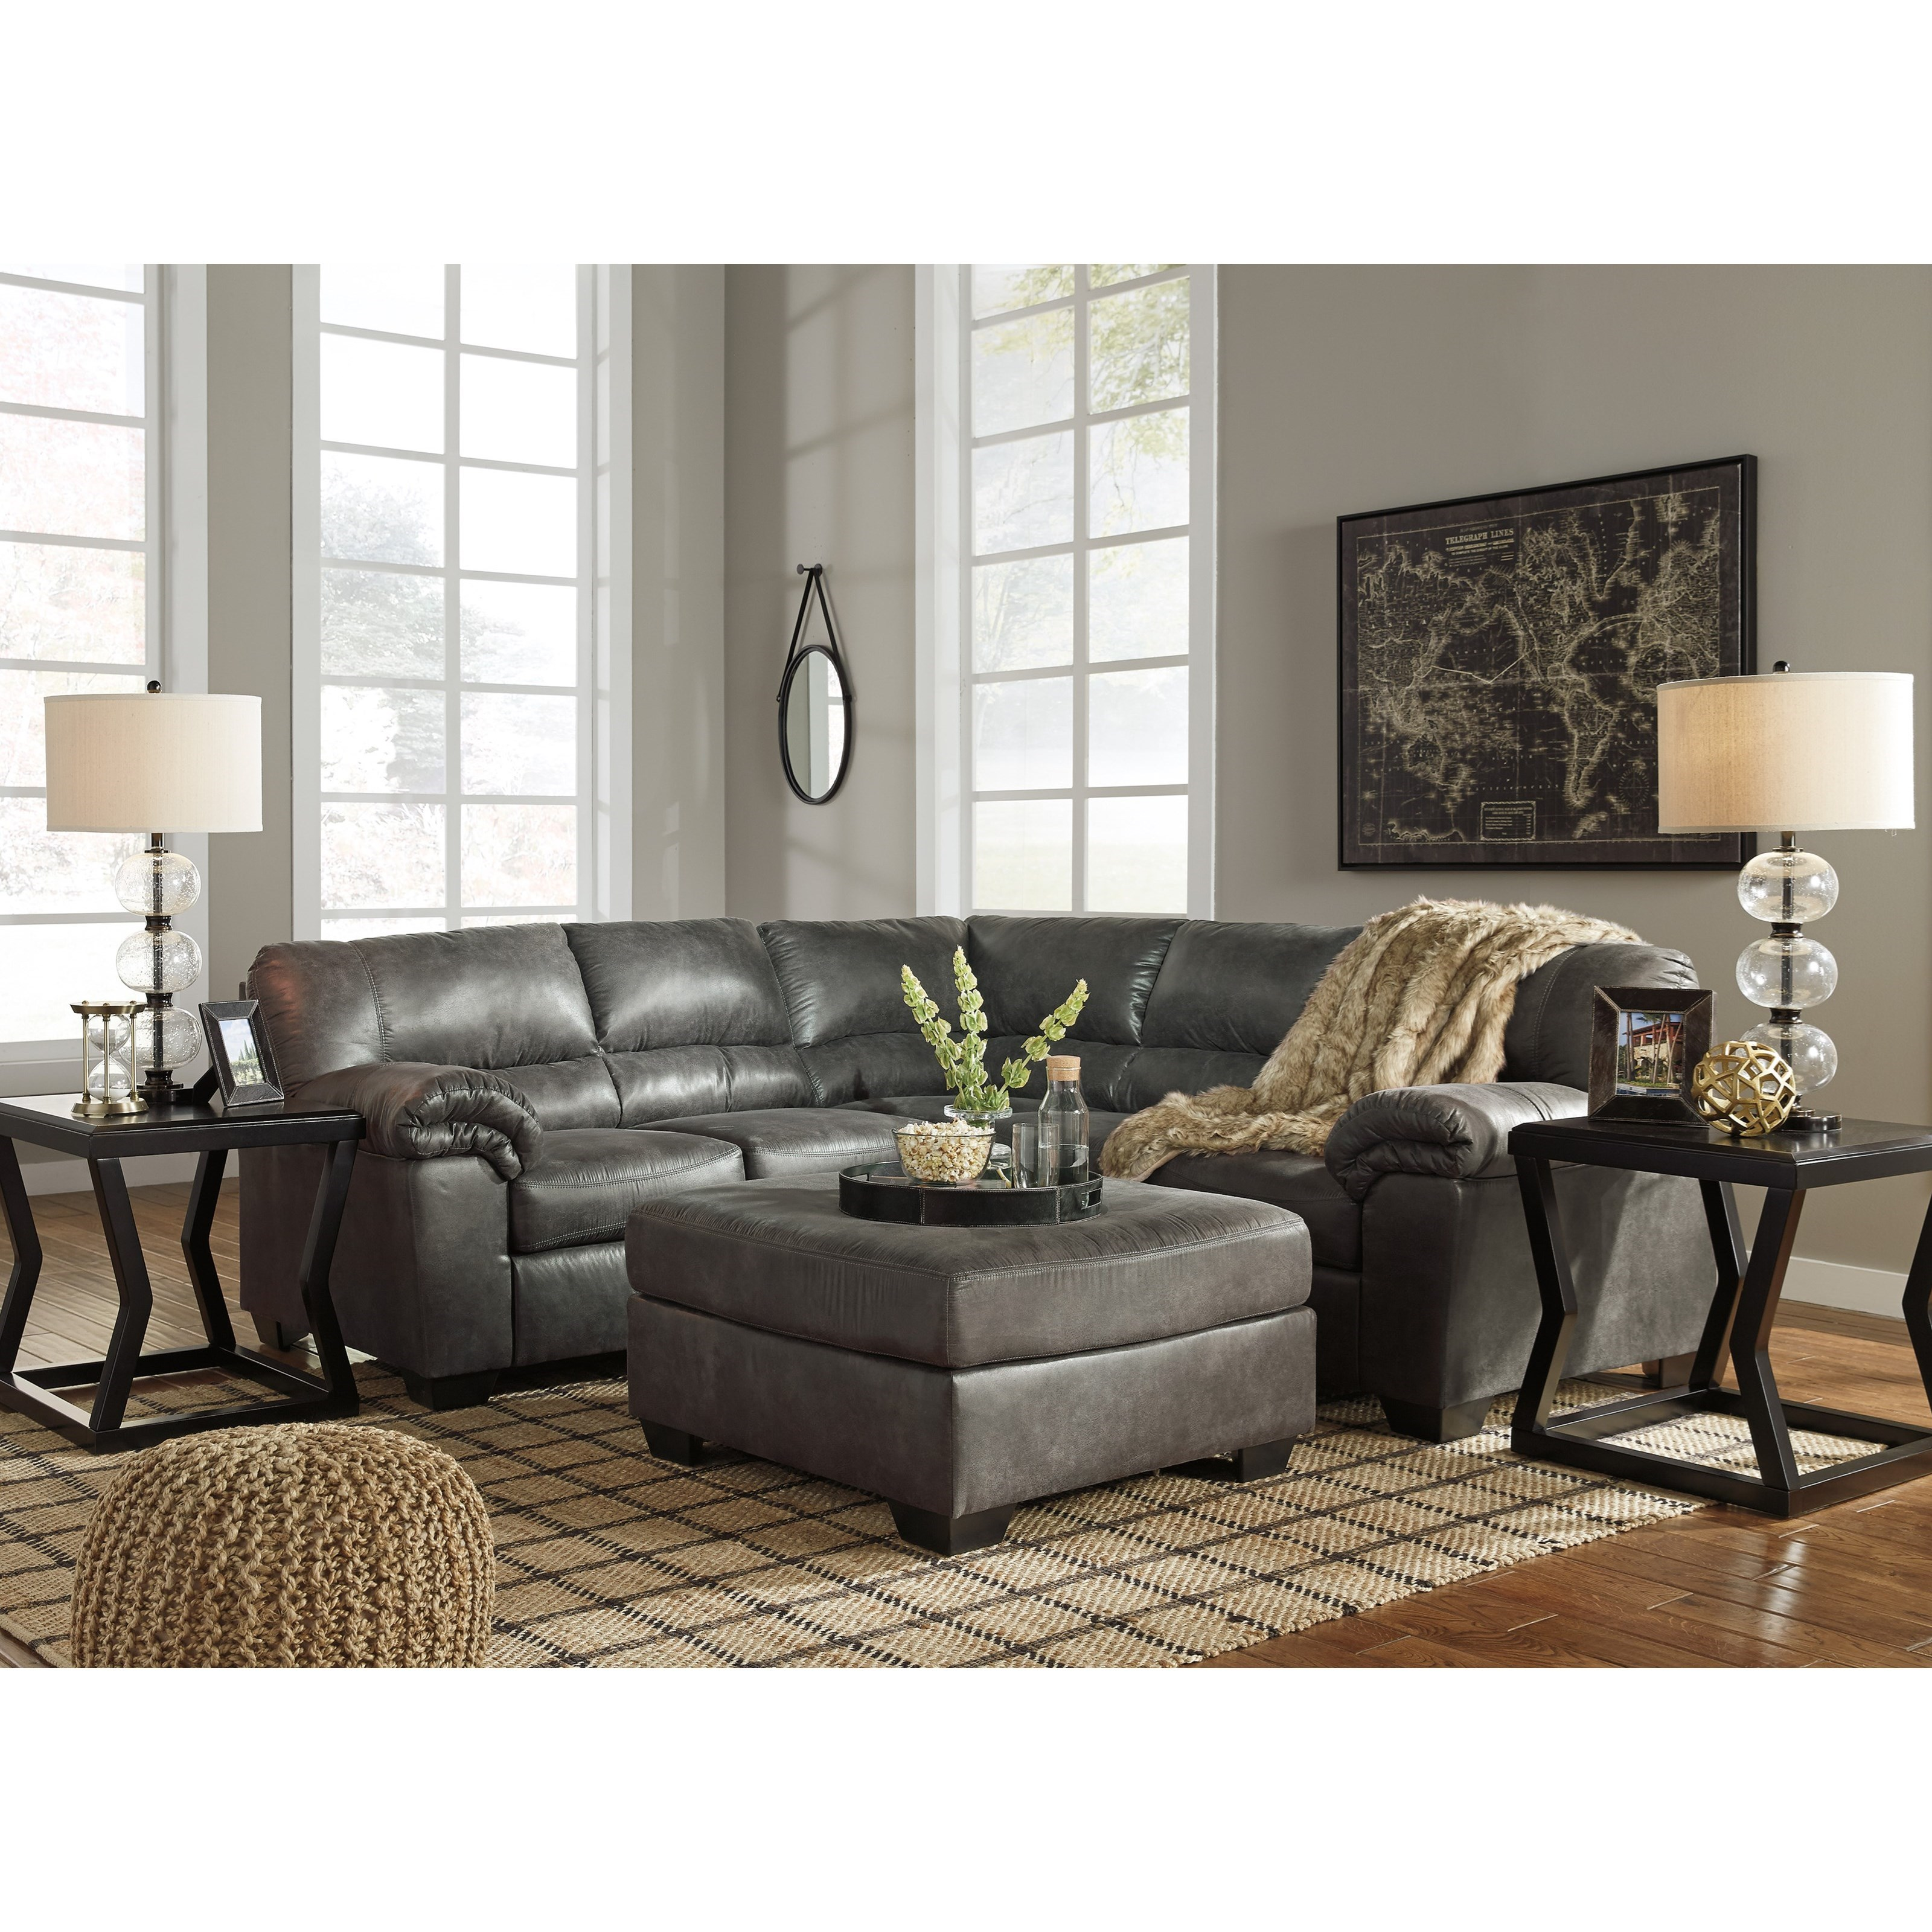 Signature Design By Ashley Bladen Stationary Living Room Group Royal Furniture Stationary